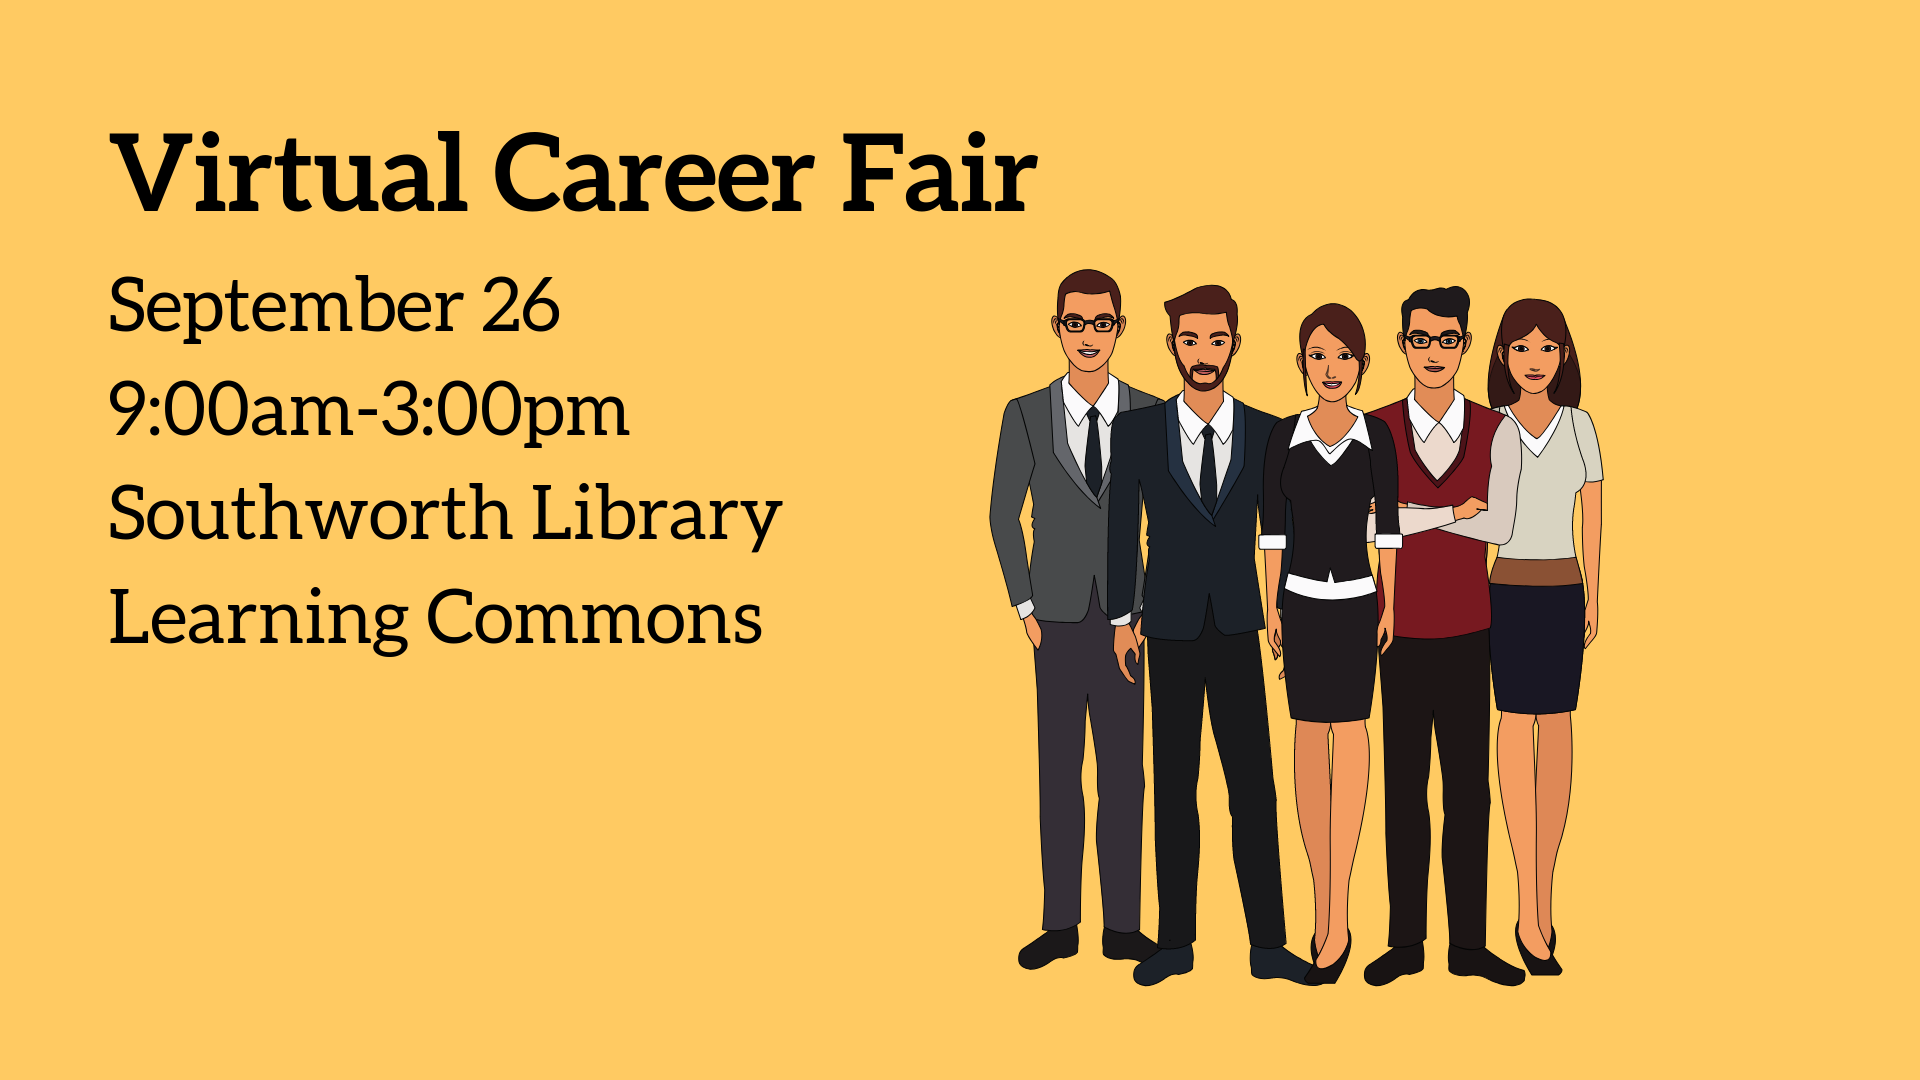 Virtual Career Fair: September 26 9:00am-3:00pm Southworth Library Learning Commons